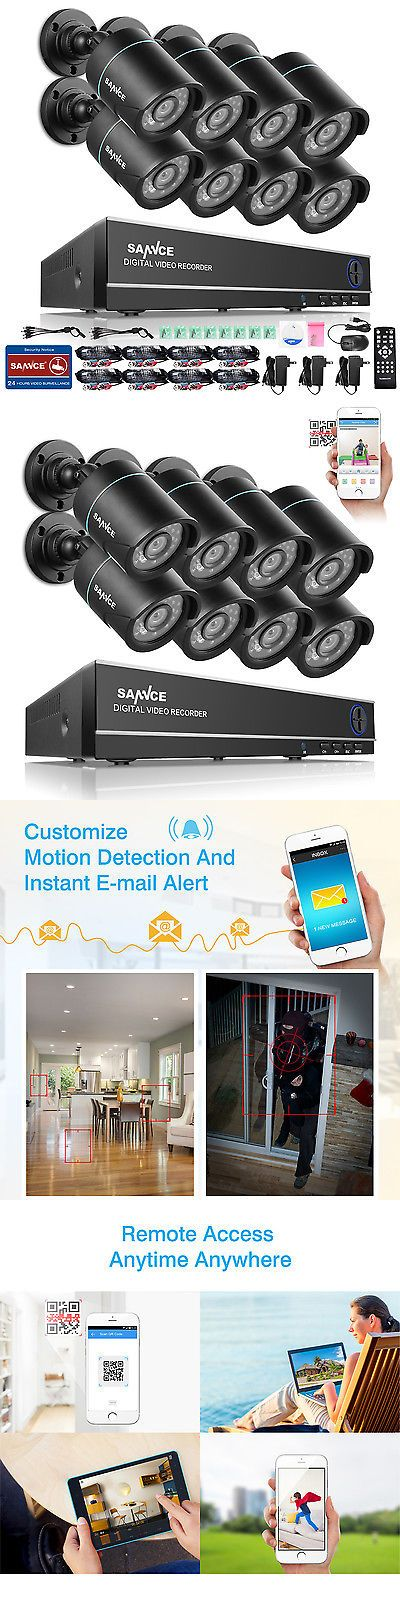 Surveillance Security Systems: Sannce 8Ch 1080N Dvr Outdoor Video Night Vision Home Cctv Security Camera System BUY IT NOW ONLY: $165.89